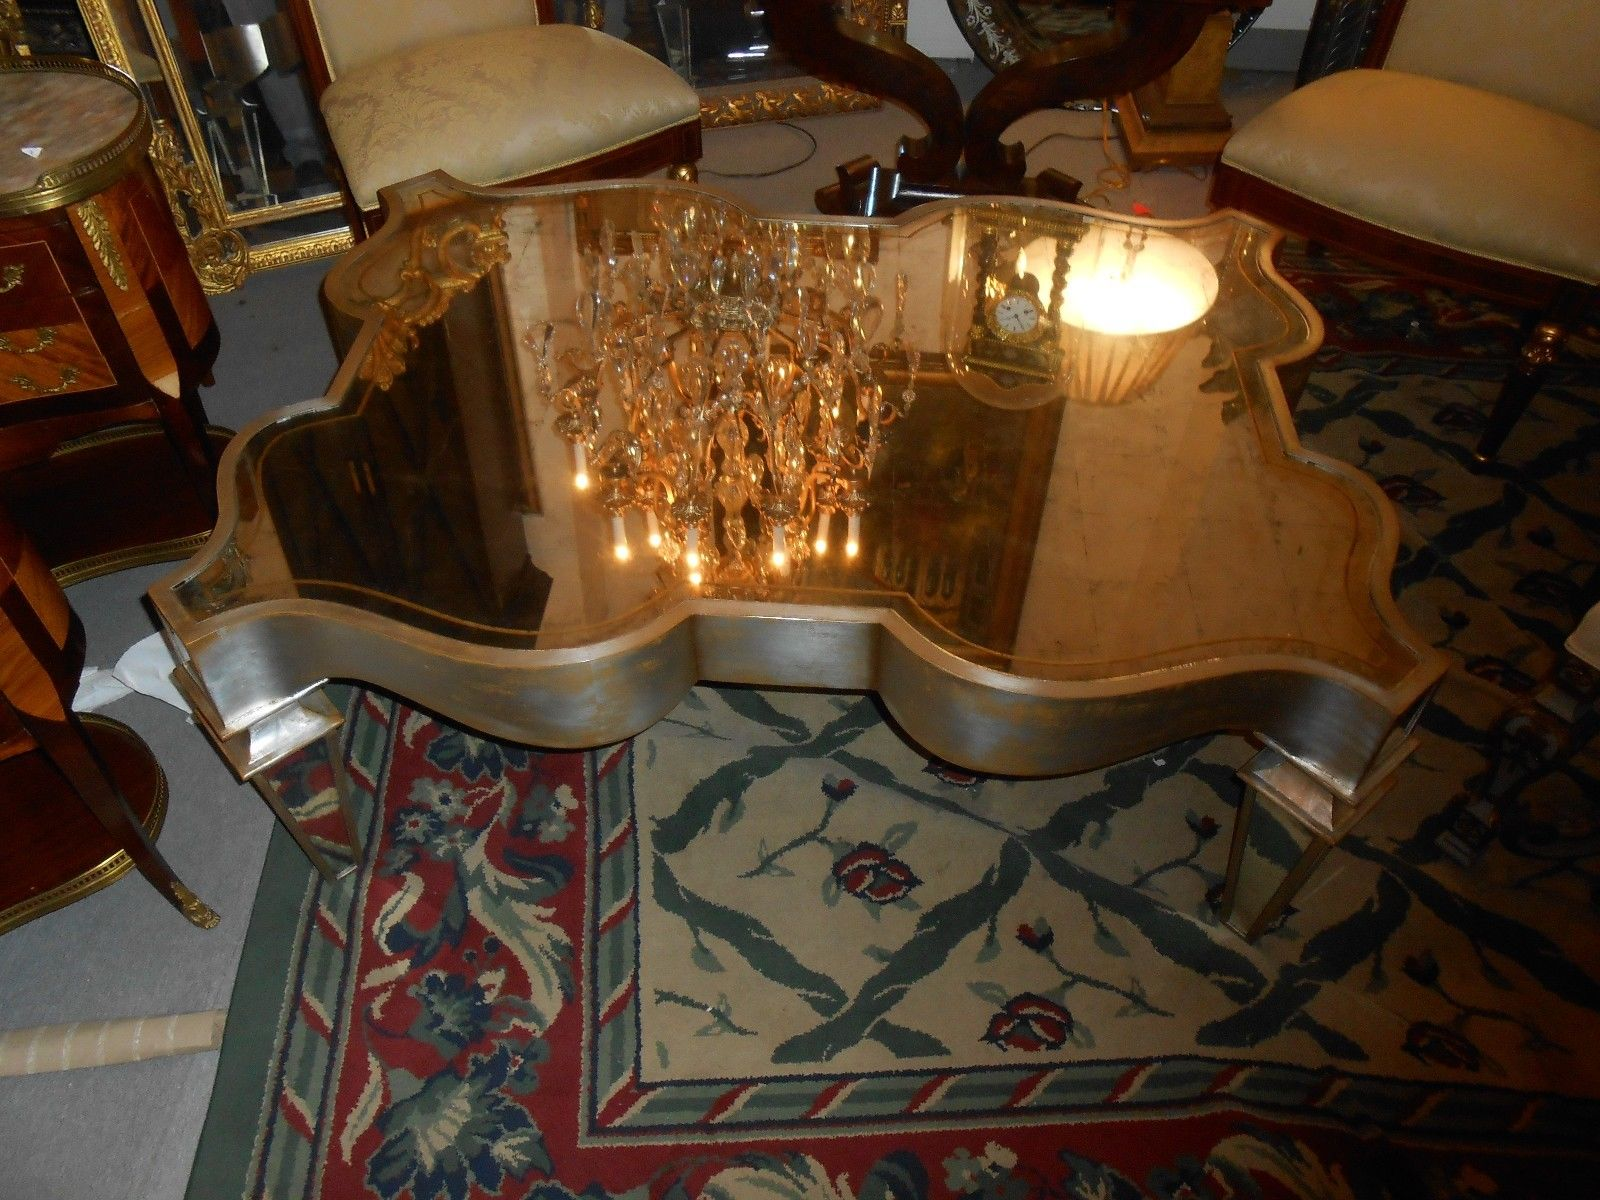 Modern John Richards Coffee Table Silver Leaf Wood Mirrored Top Legs With Accents Very Good Quality Great Detail The Mirror Is